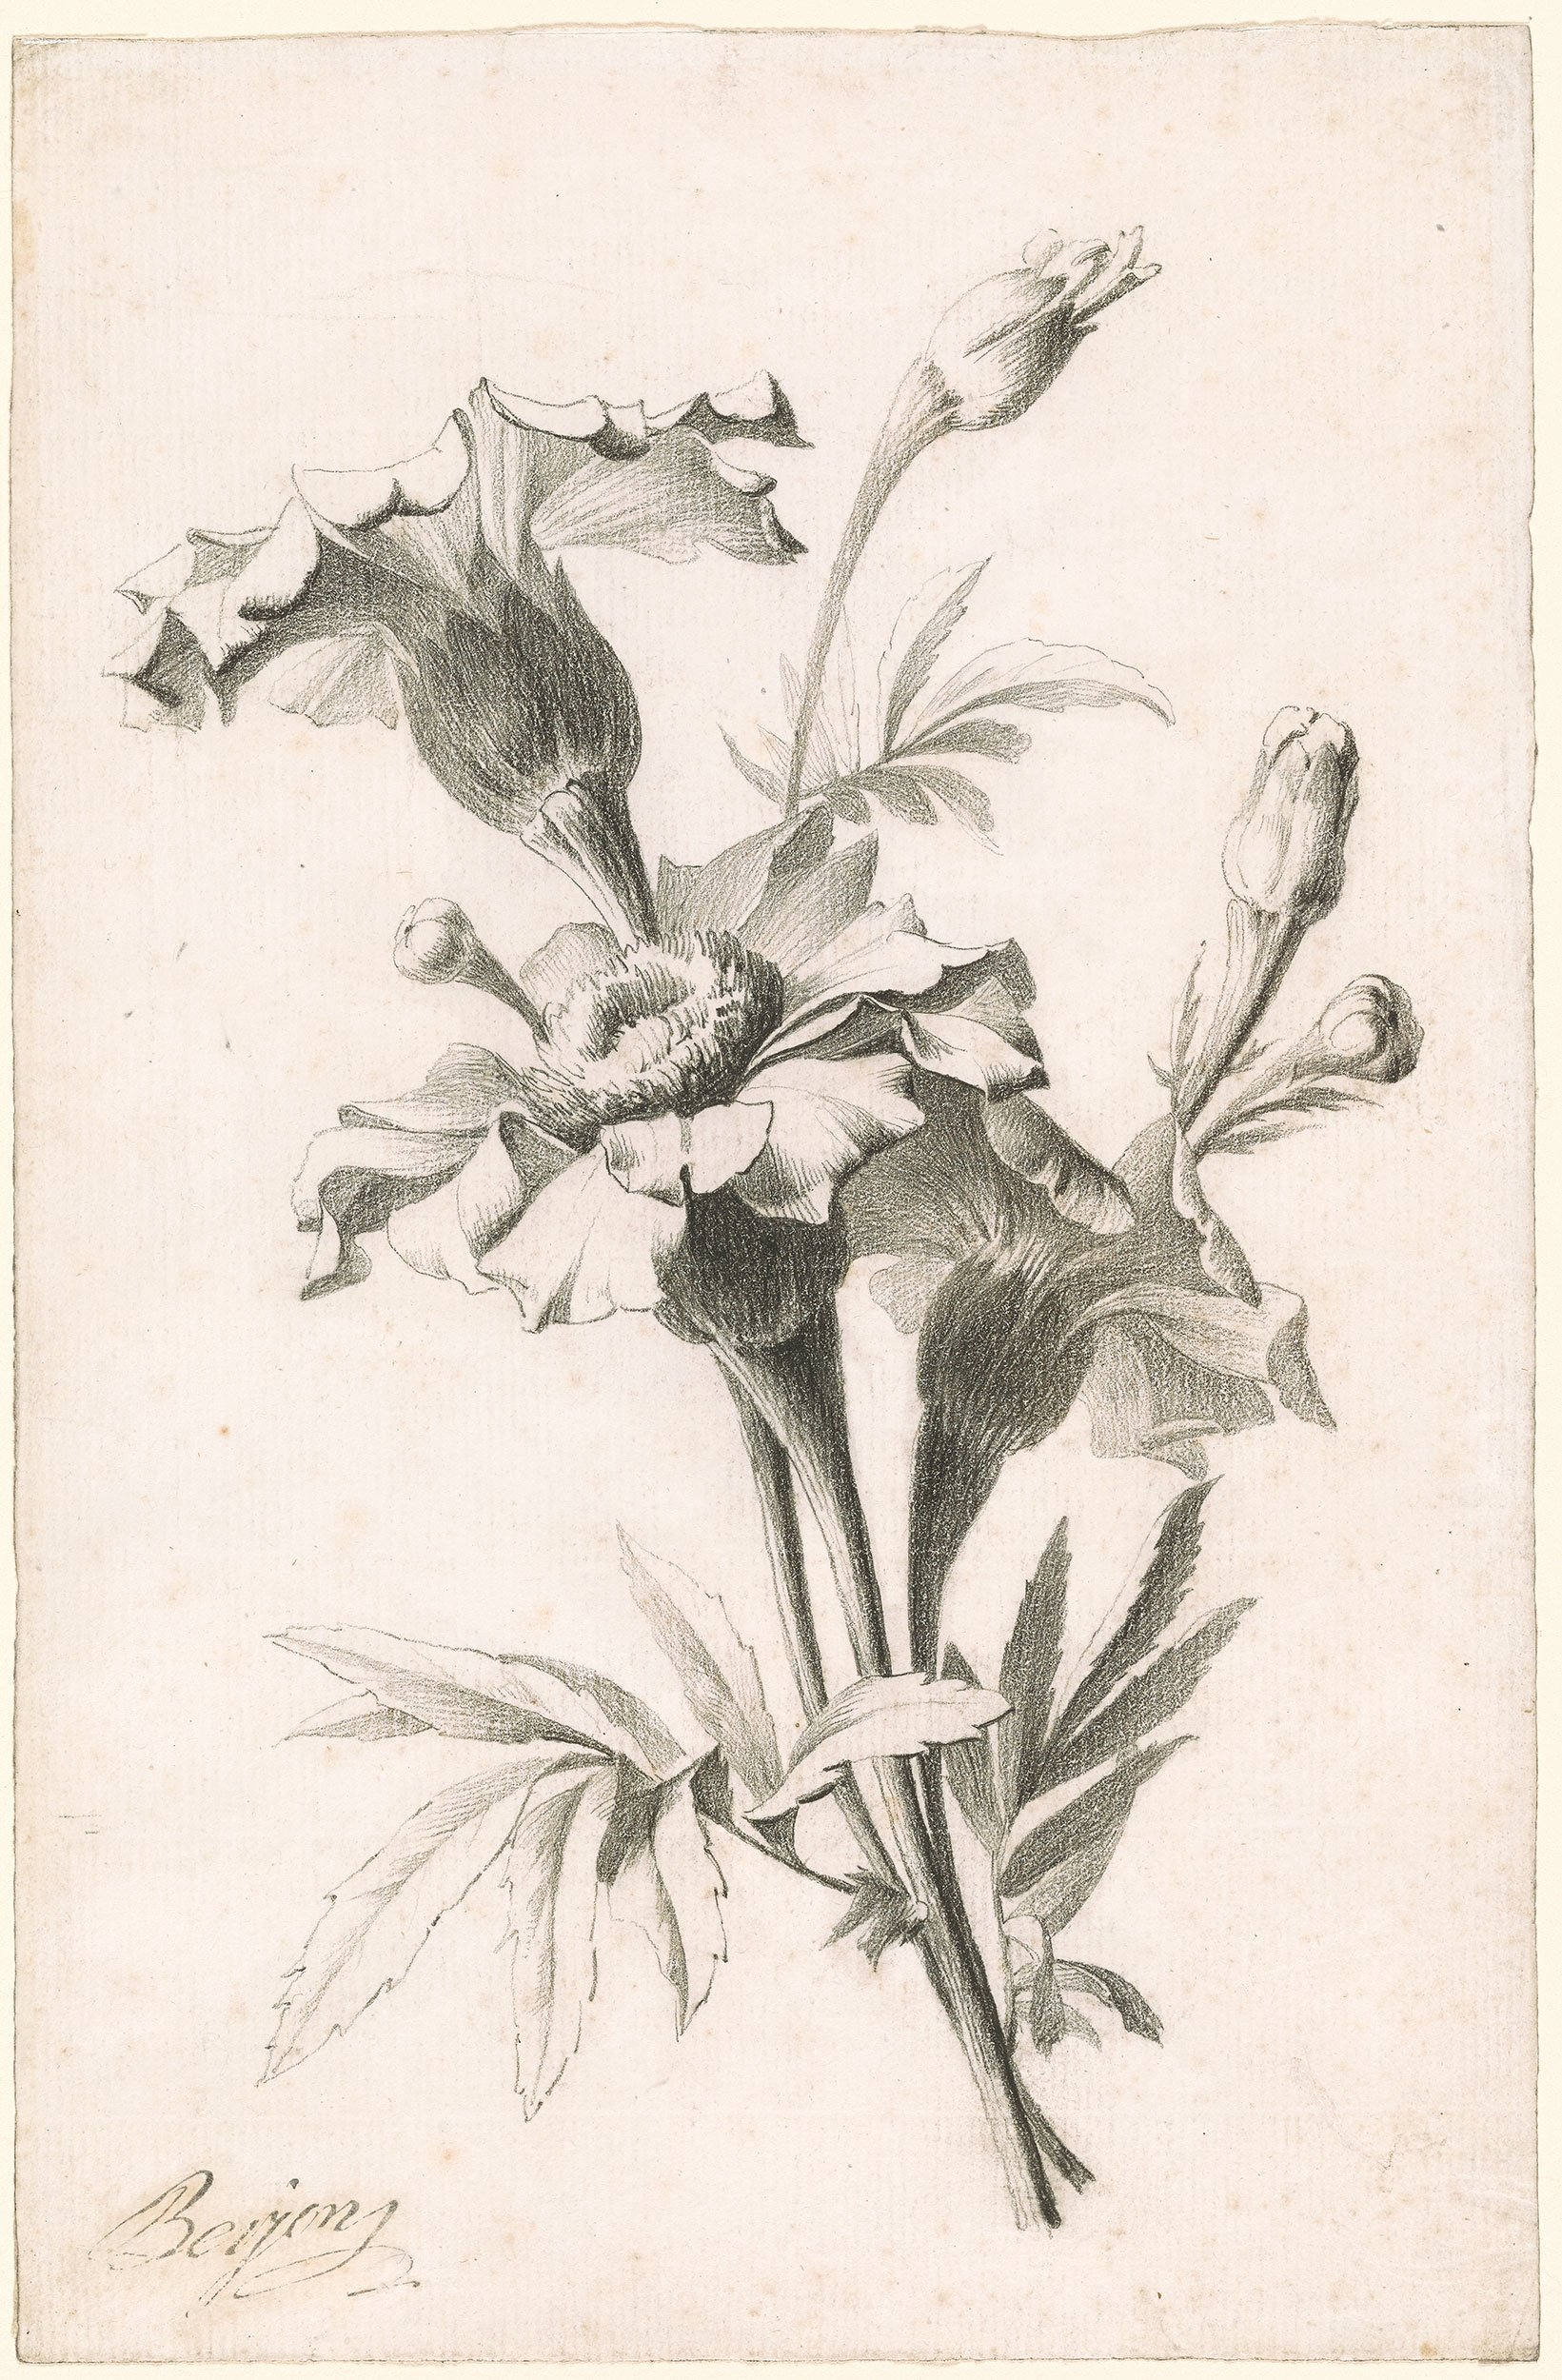 Drawings Of A Flower Best Of Antoine Berjon Study Of A Flower Drawings Line